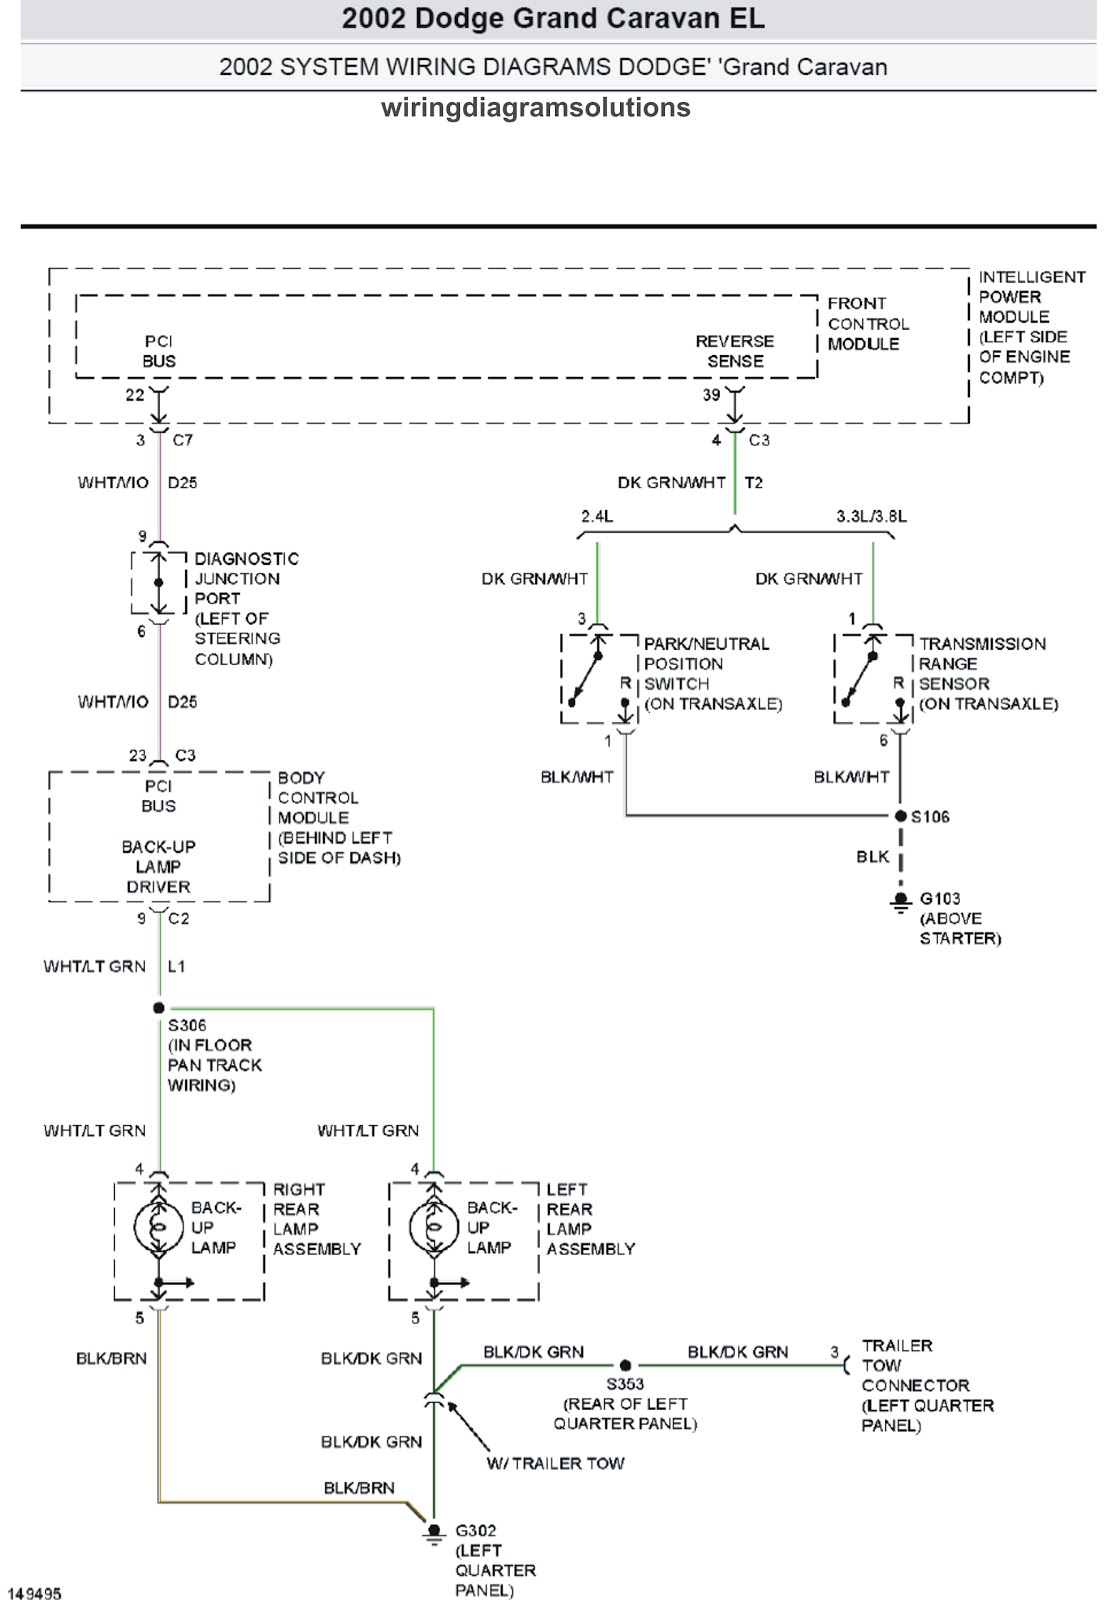 may 2011 schematic wiring diagrams solutions 02 dodge caravan wiring diagram 2003 dodge grand caravan wiring [ 1105 x 1600 Pixel ]